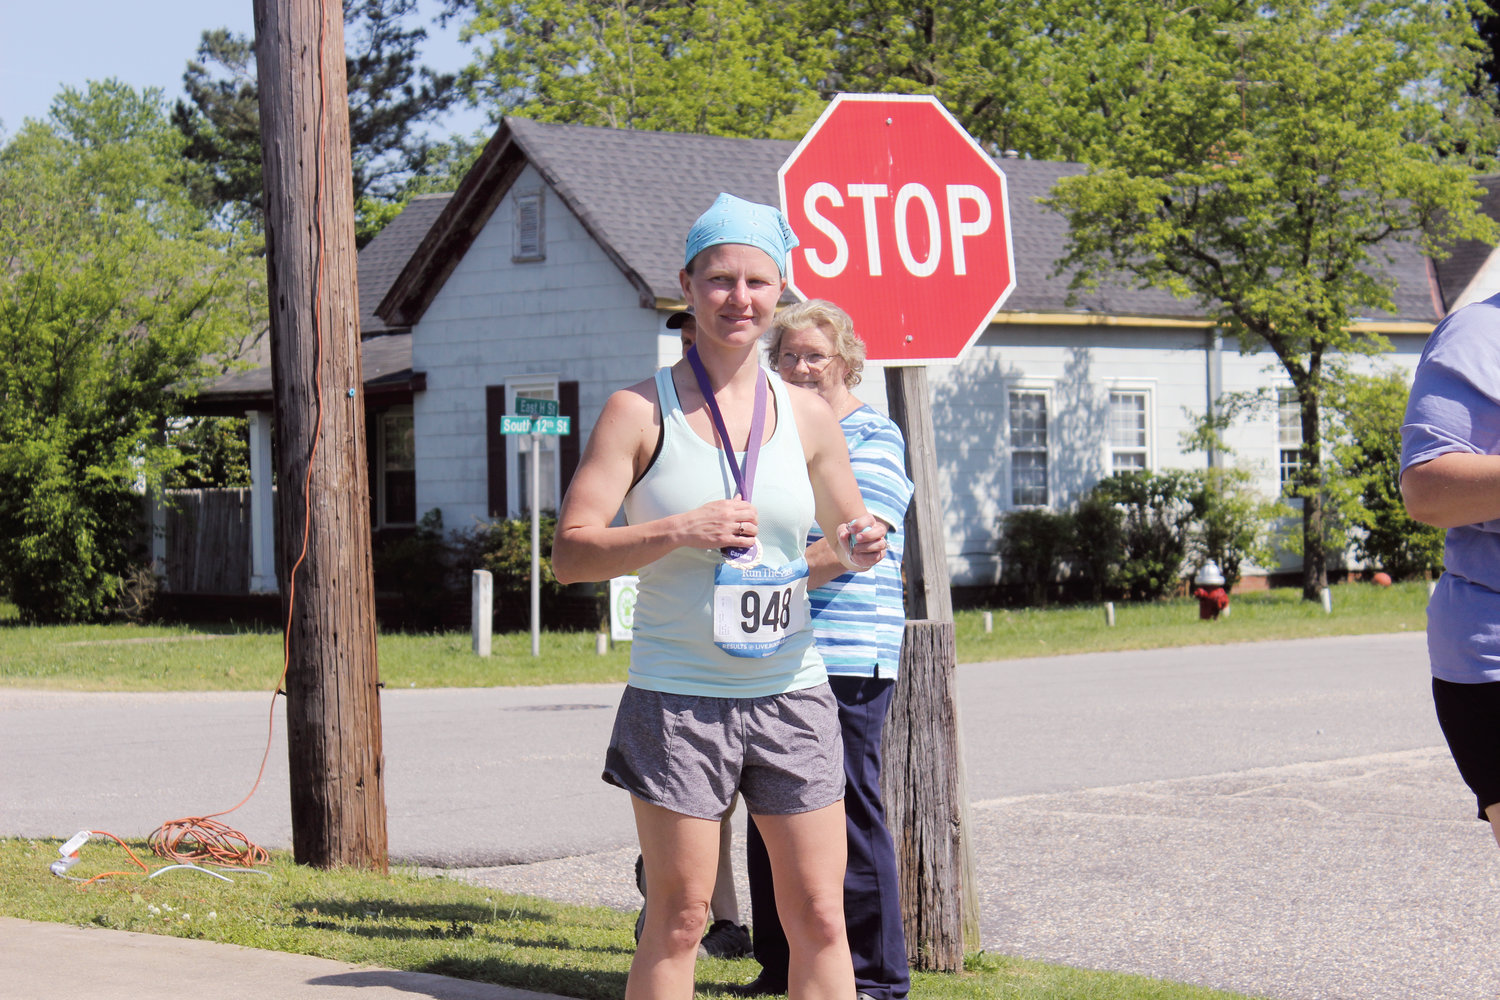 Jilene Brooks stands with her medal after being the first female to finish in this year's RailTrail Run.